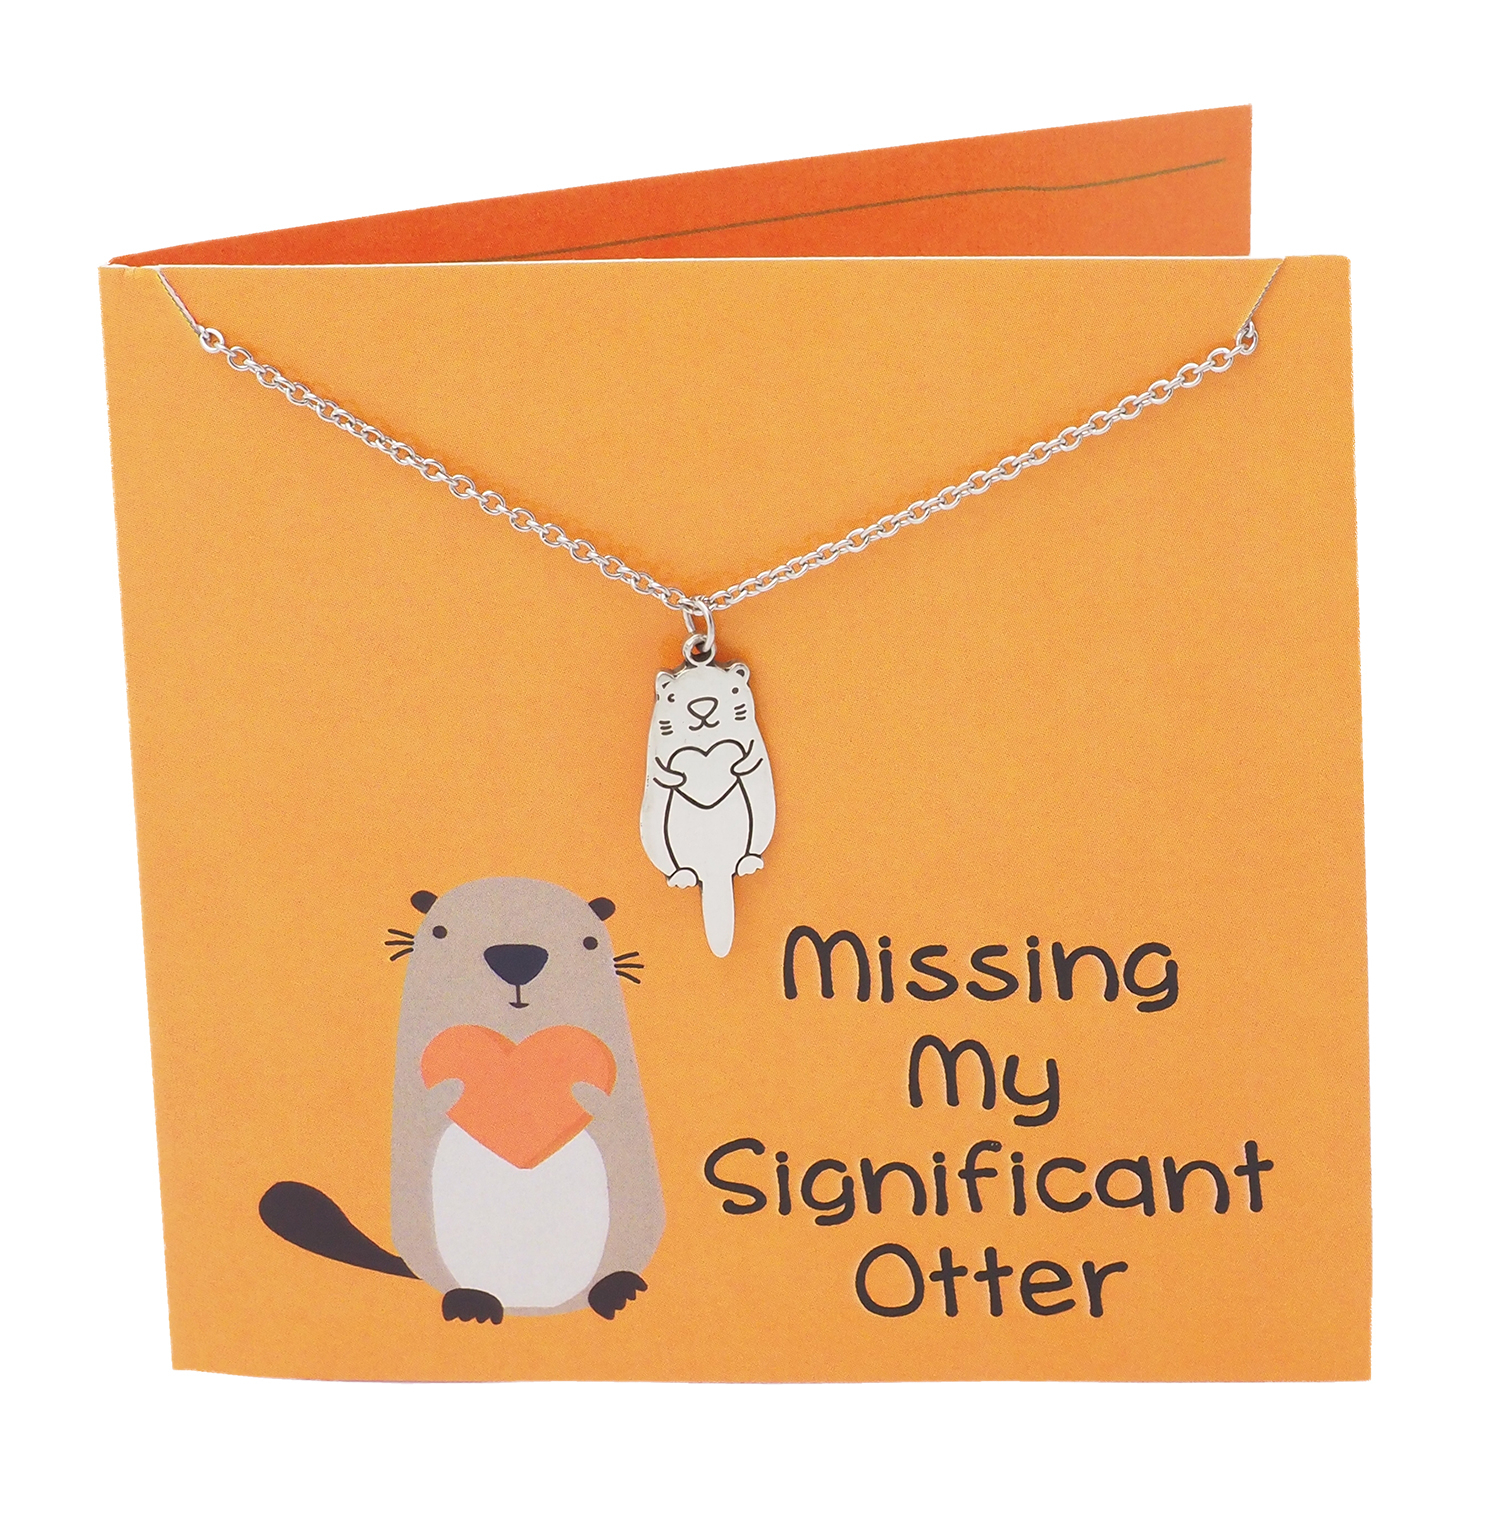 Birthday Card Ideas For Best Friend Funny Quan Jewelry Otter Friendship Necklace Funny Puns Gifts For Girlfriend Missing My Significant Otter Animal Inspired Charm Happy Birthday Cards